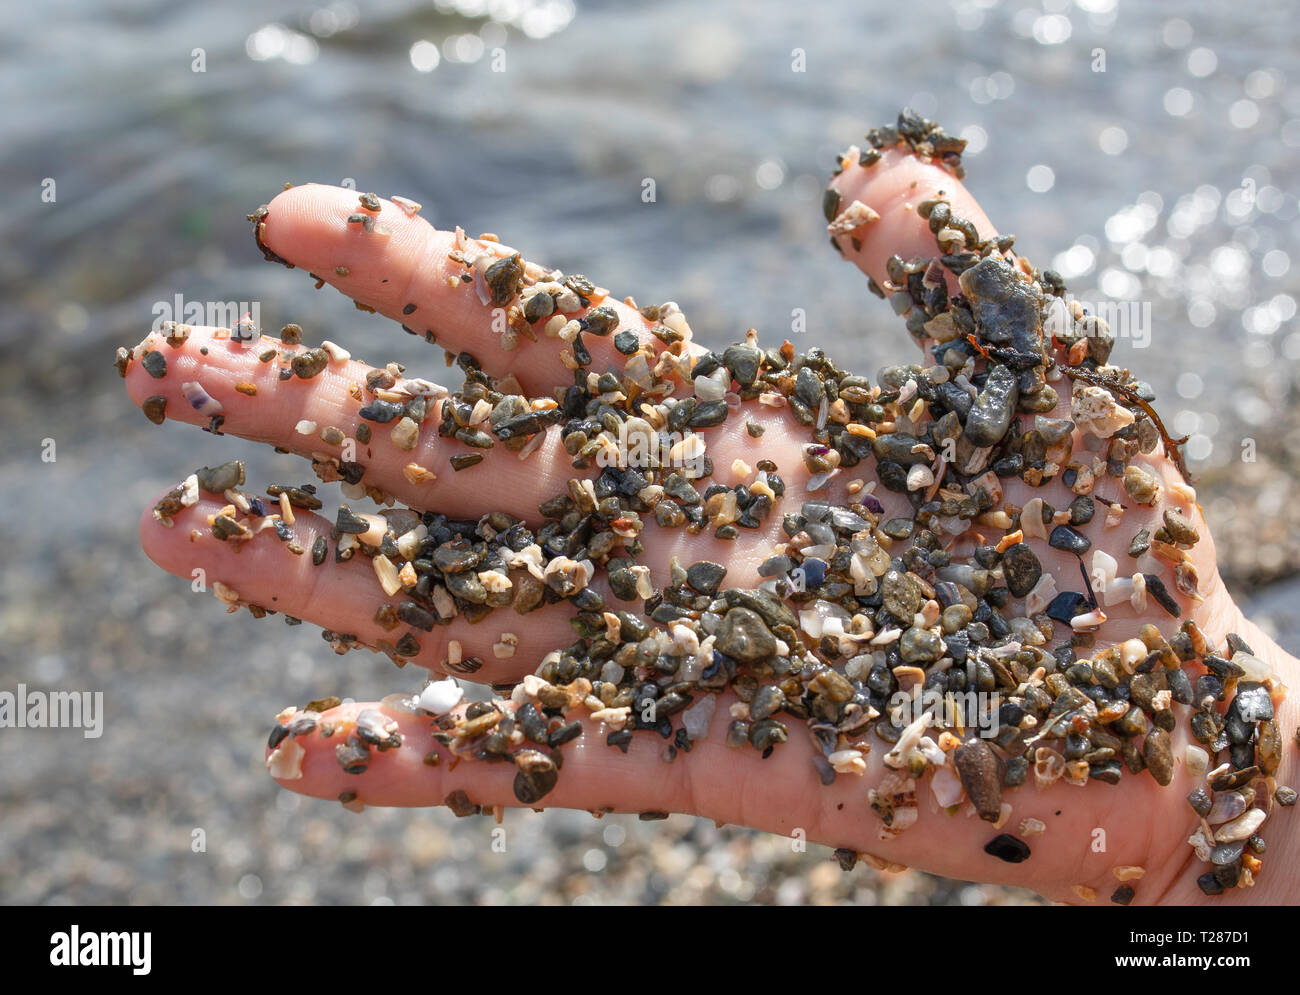 Fine sea gravel on a woman's hand, little shells, stones, pieces of glass. - Stock Image